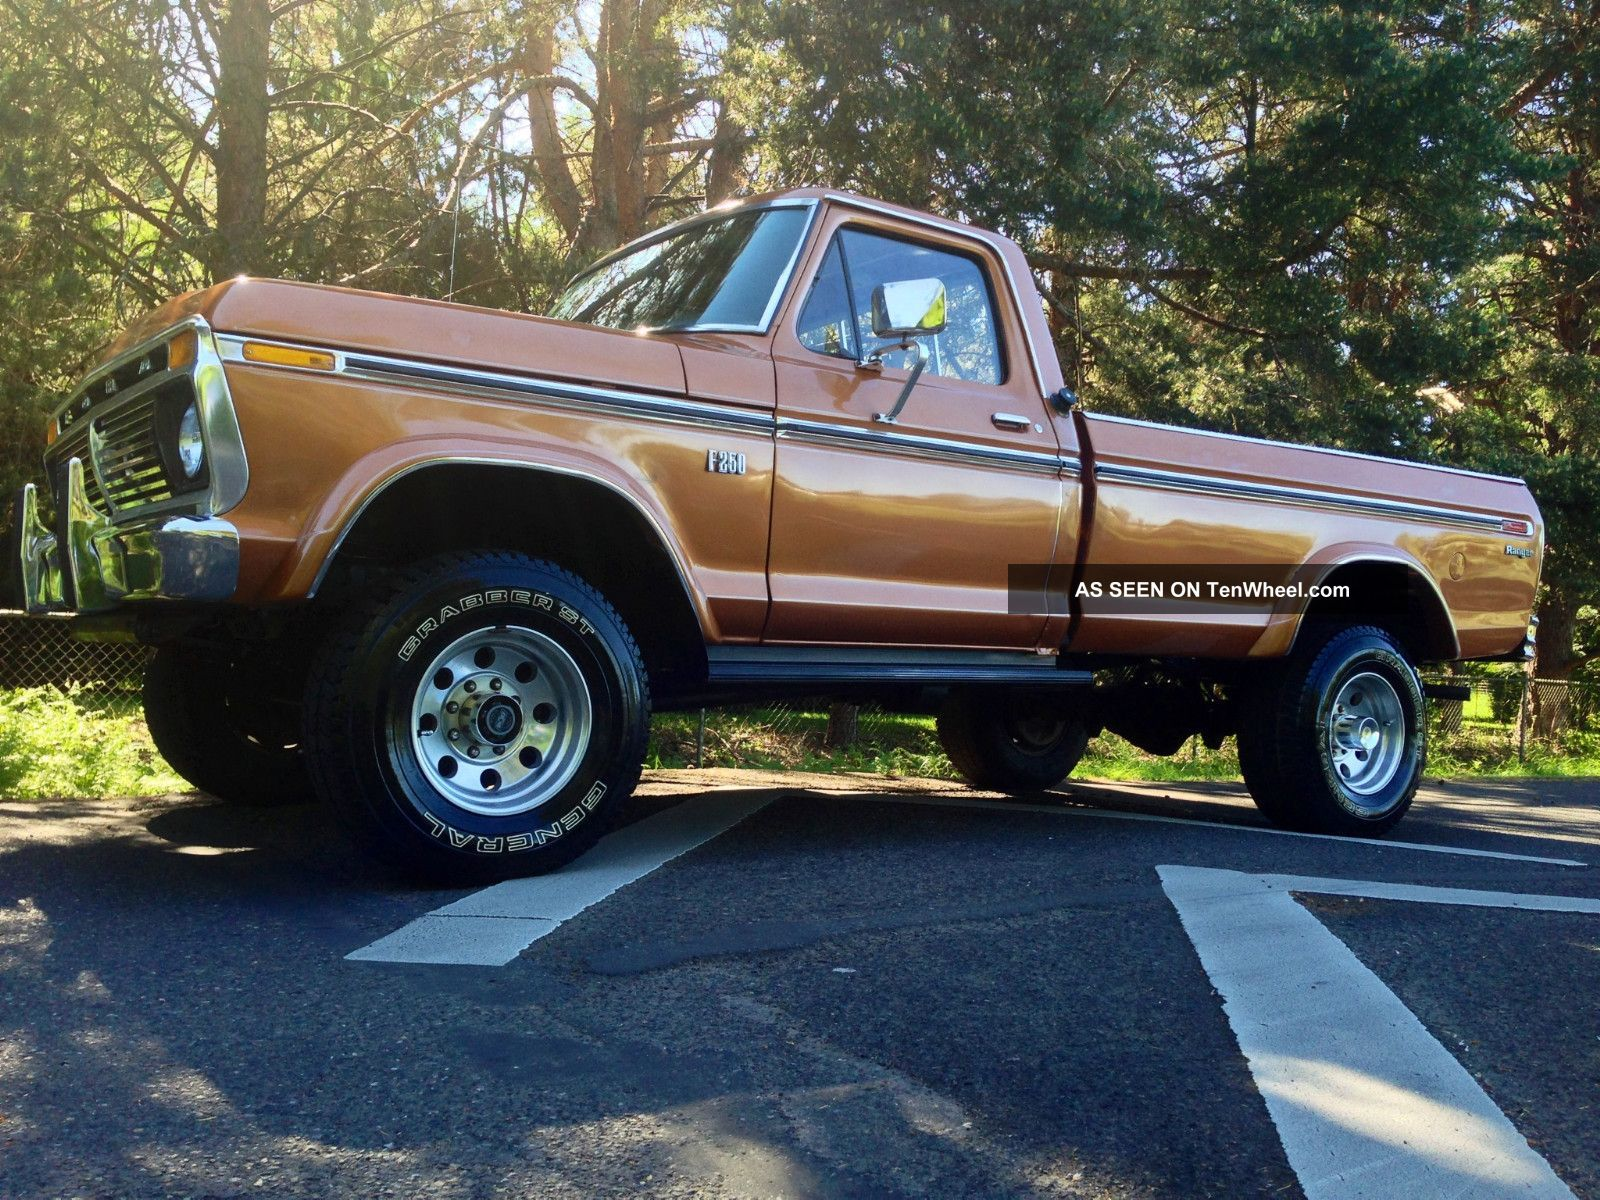 Buy used 1976 ford xlt ranger longbed highboy 1977 1978 1979 1975 1974 1973 1972 in vancouver washington united states